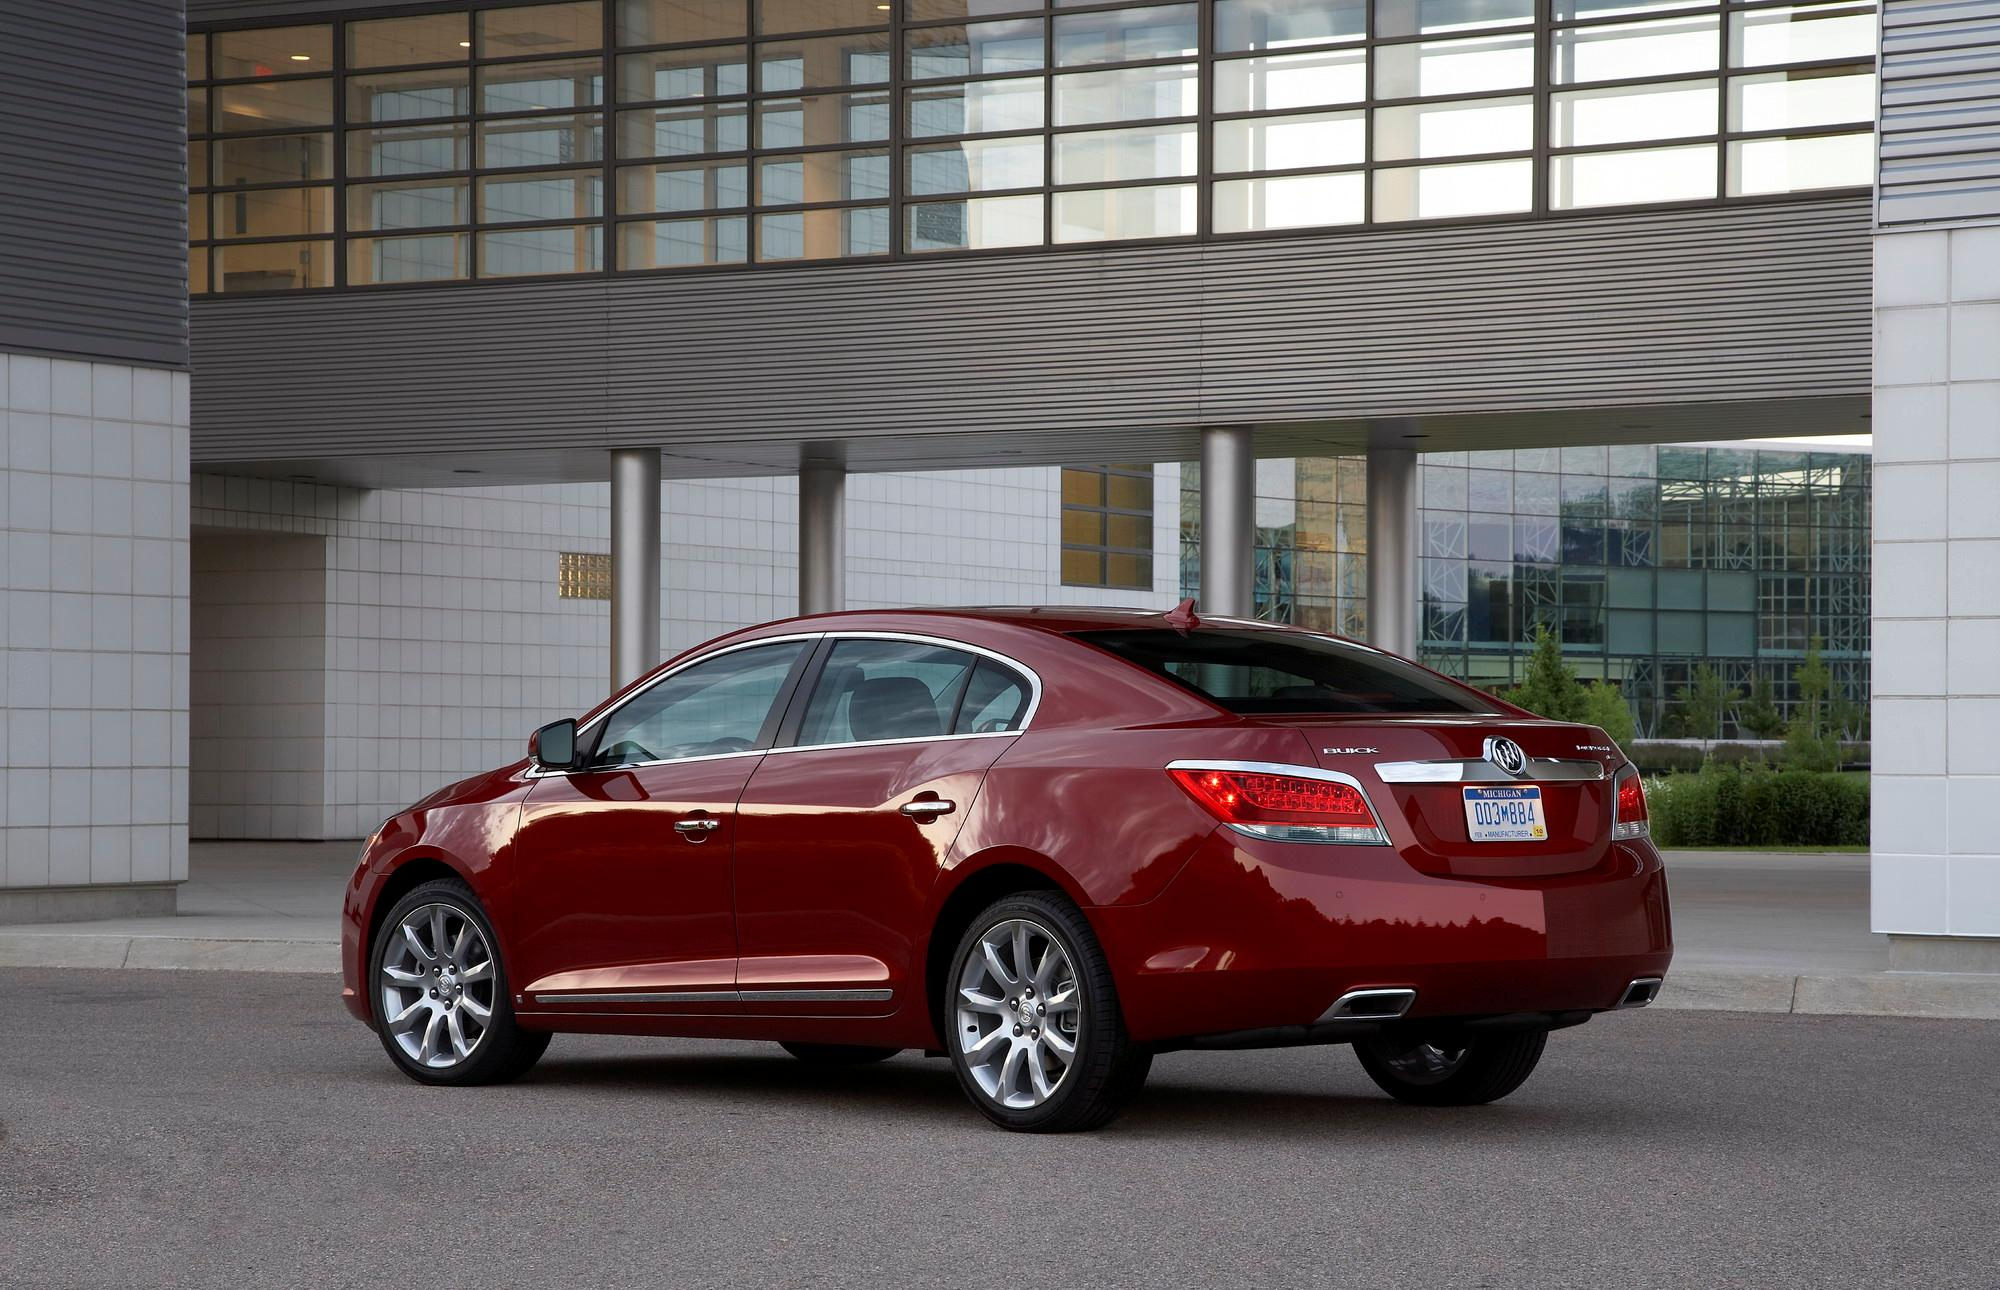 Buick LaCrosse: With Selective Ride Control